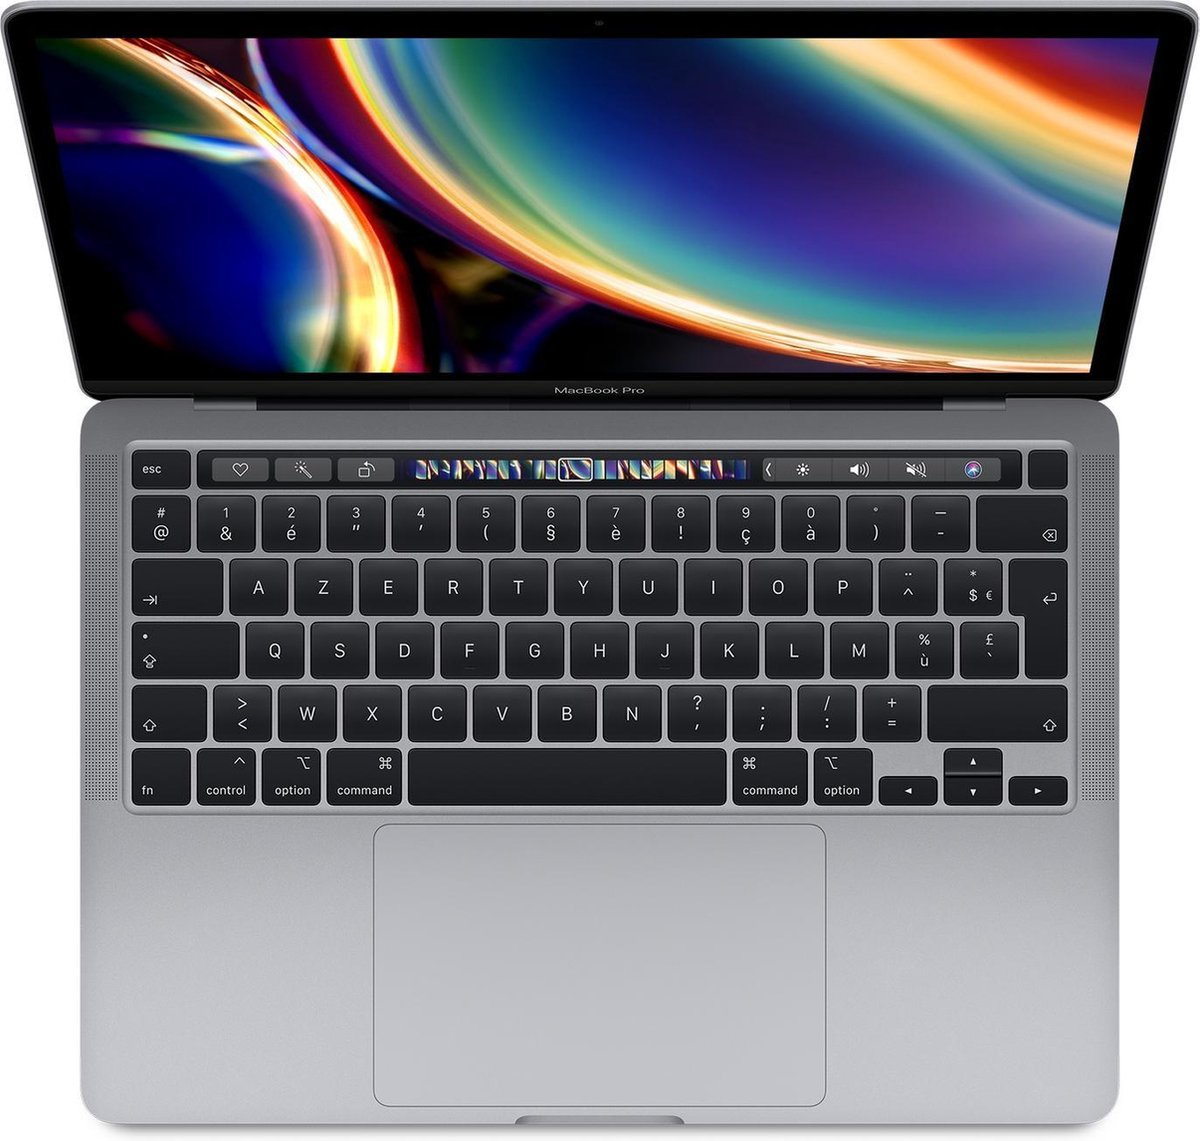 Apple MacBook Pro (2020) MXK32 – 13.3 inch – Intel Core i5 – 256 GB – Spacegrijs – Azerty